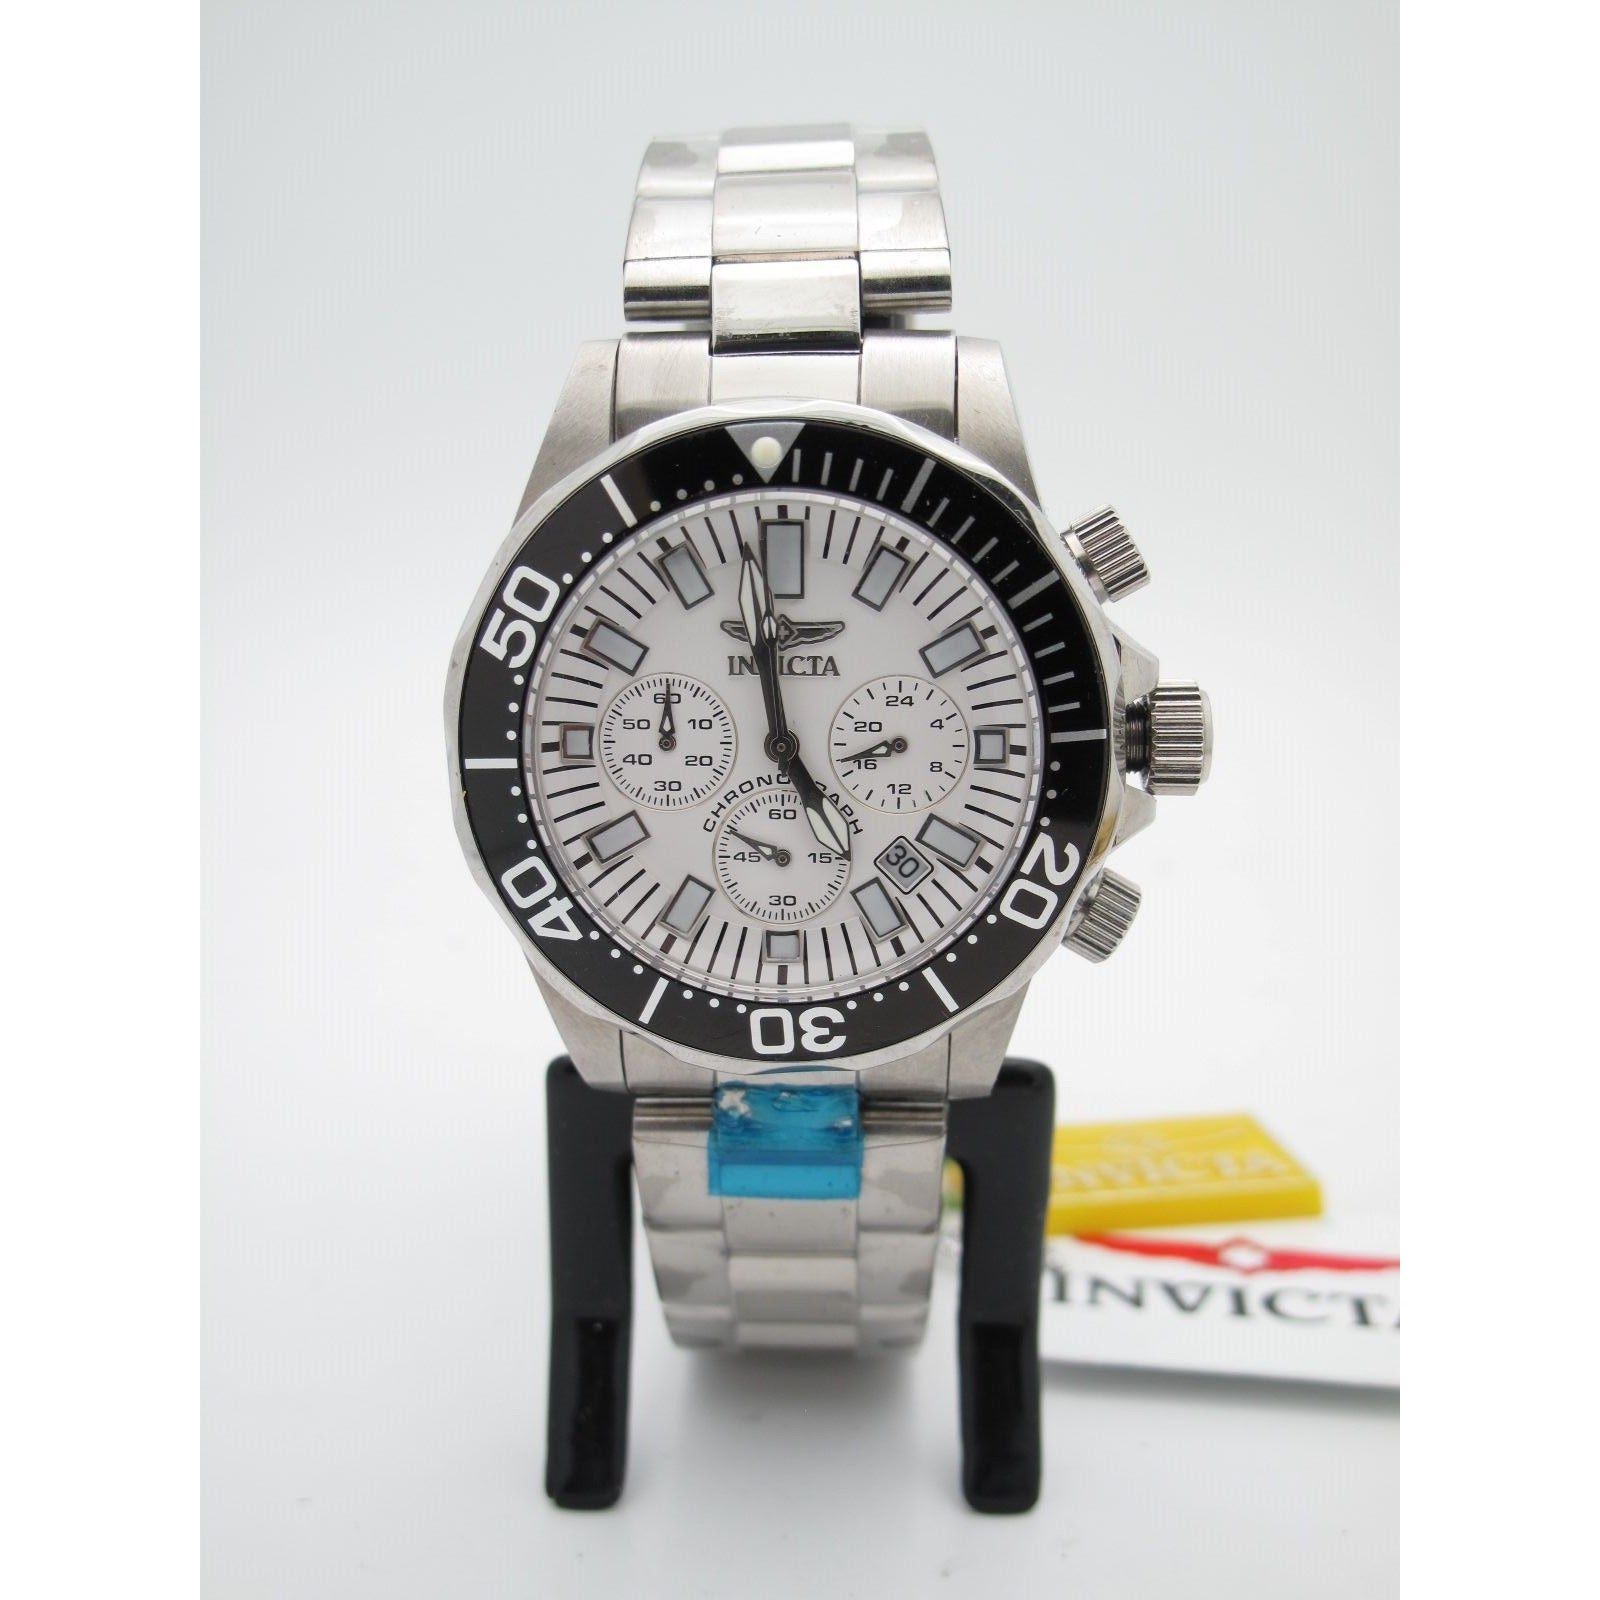 Invicta Men's Chronograph Stainless Steel Case and Bracelet White Dial Watch 7053